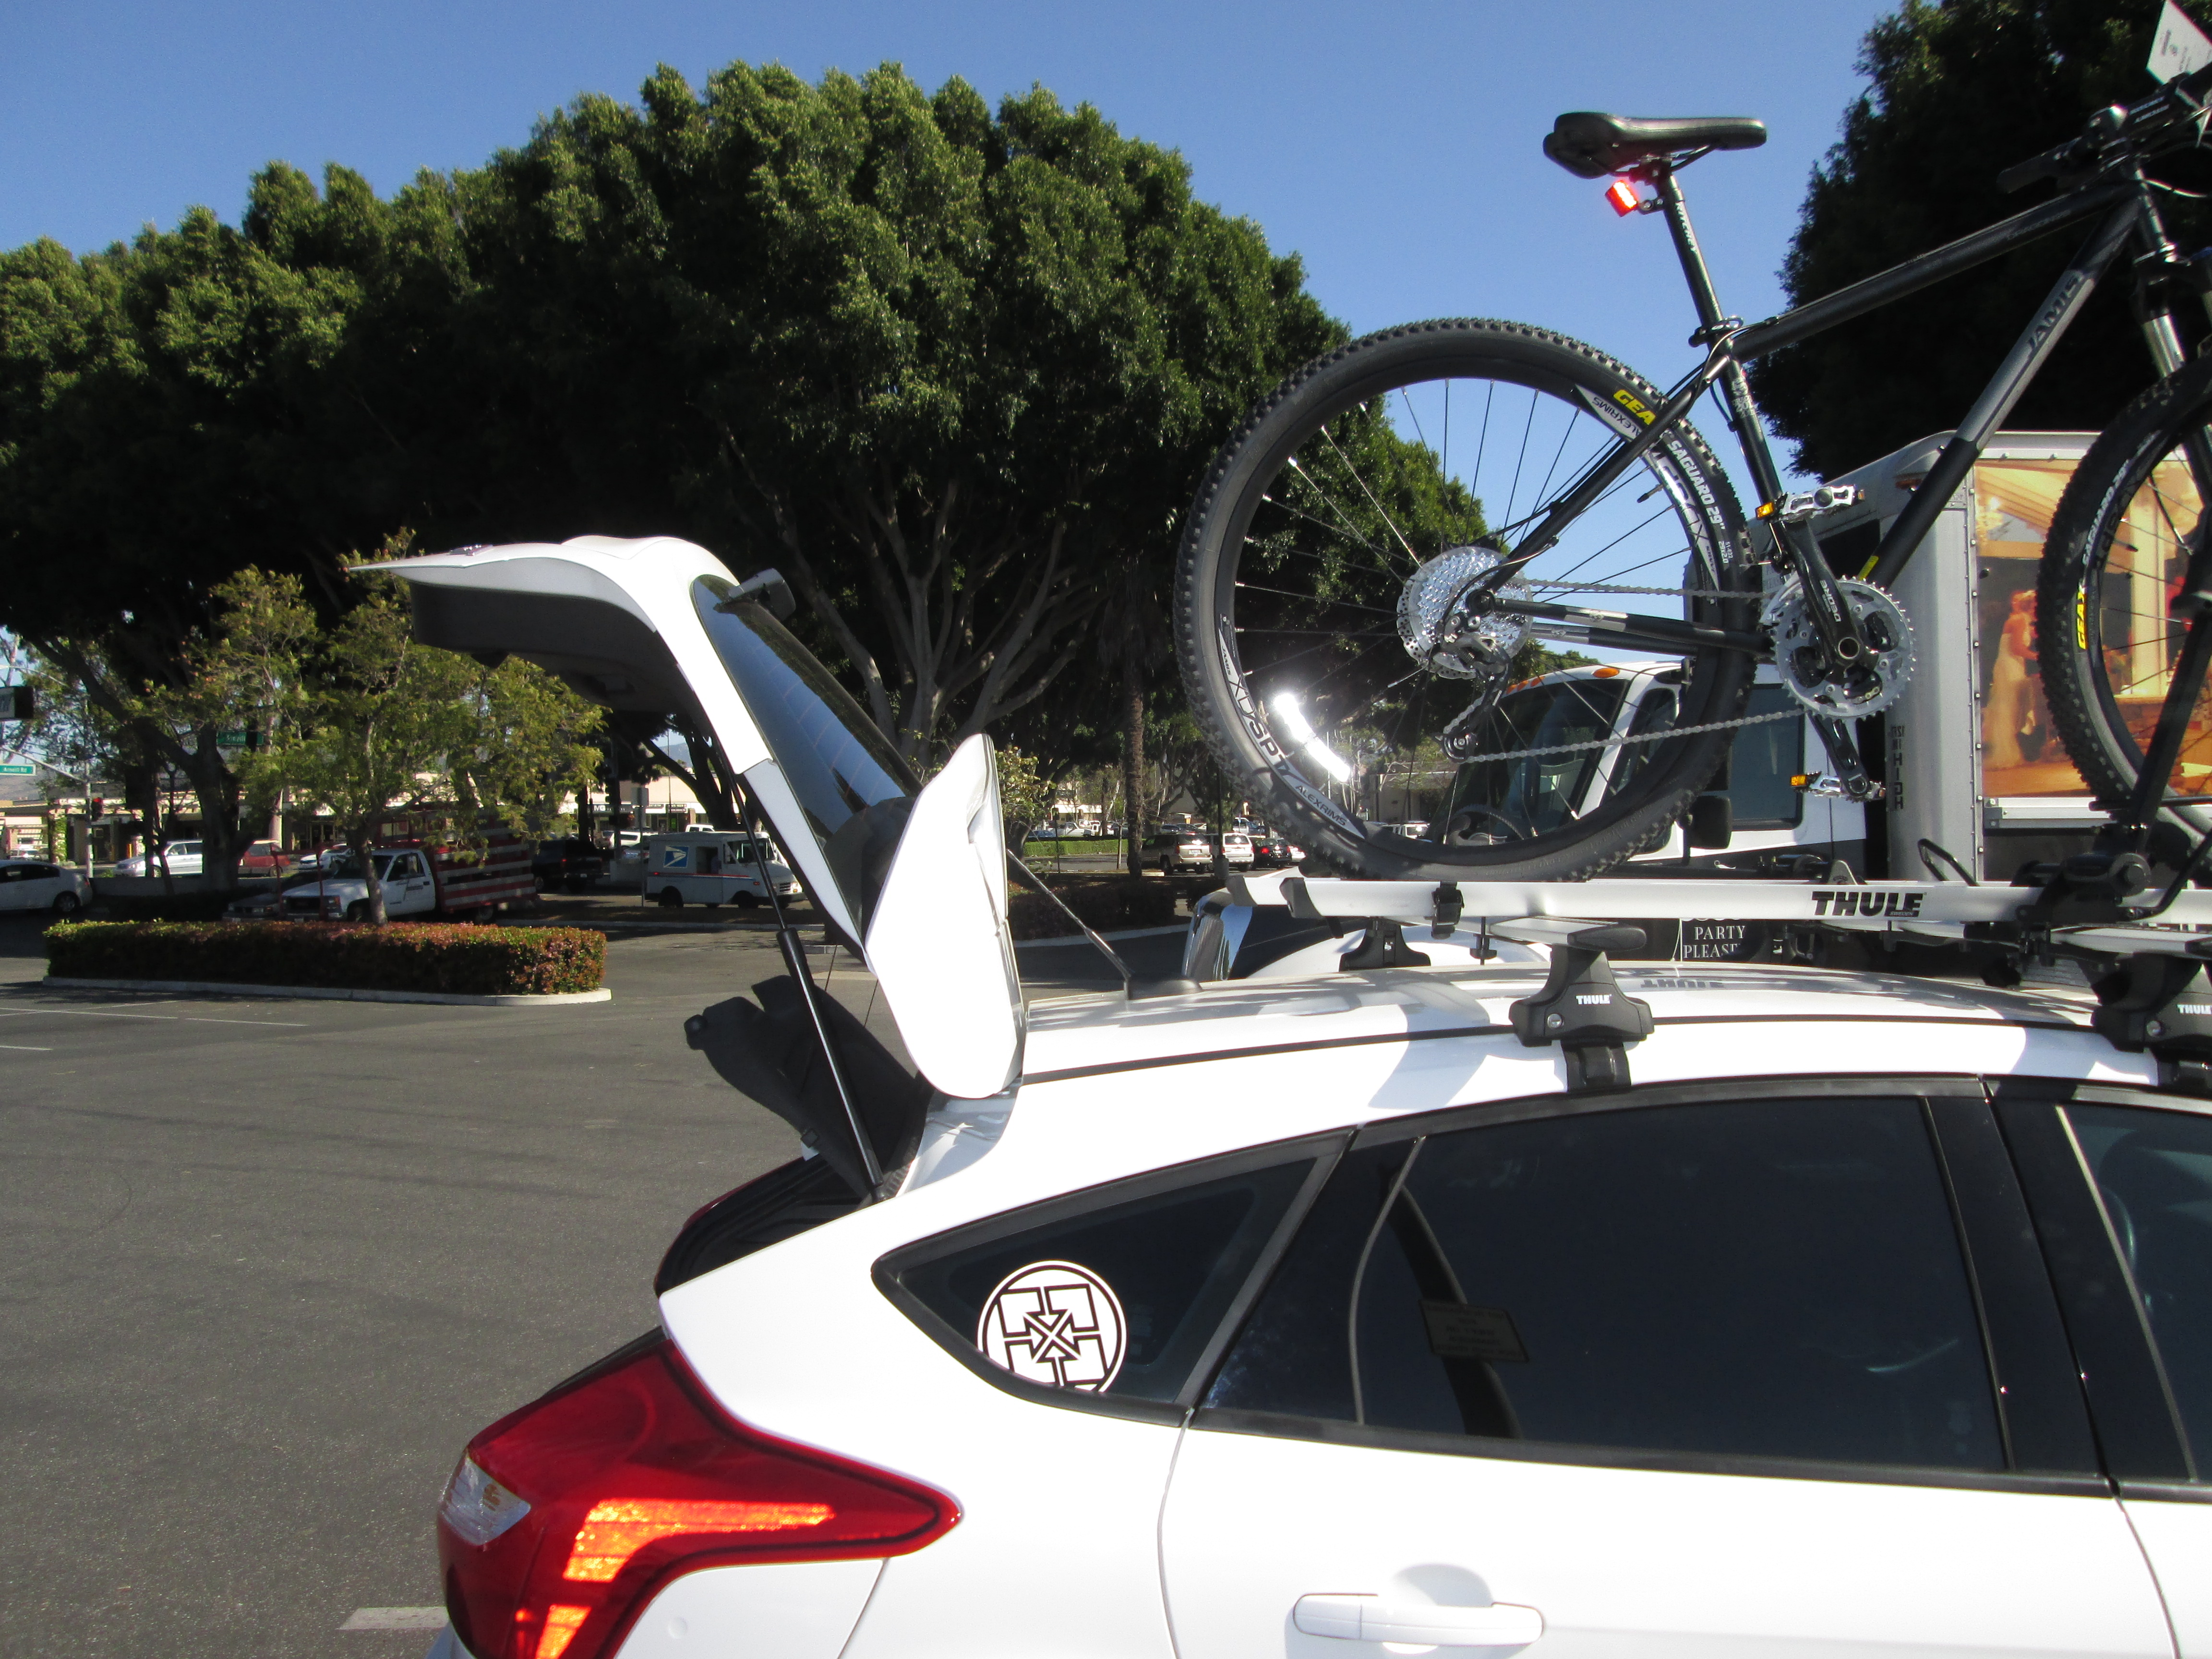 Yakima Q Tower Roof Rack Dubious Setup